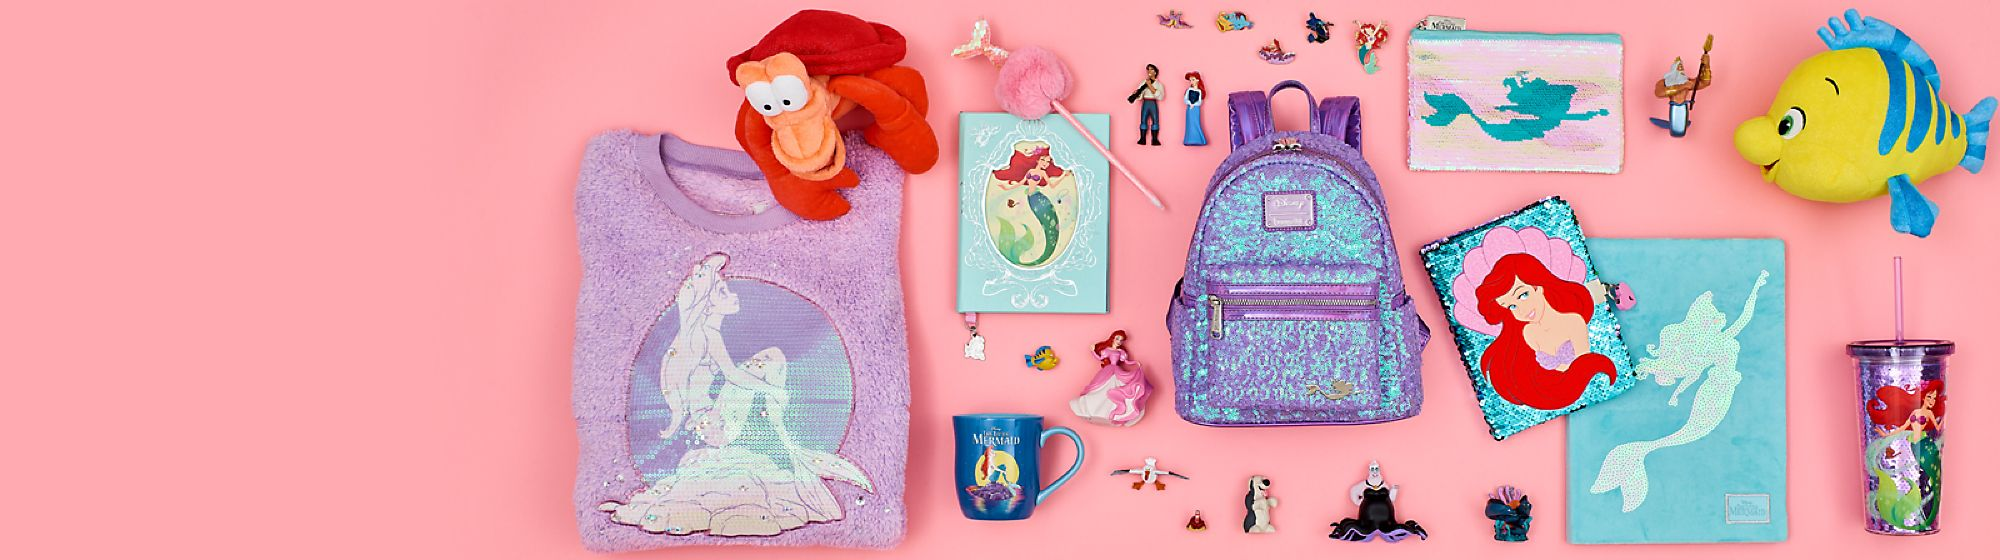 The Little Mermaid Celebrating 30 years with our collection of toys,